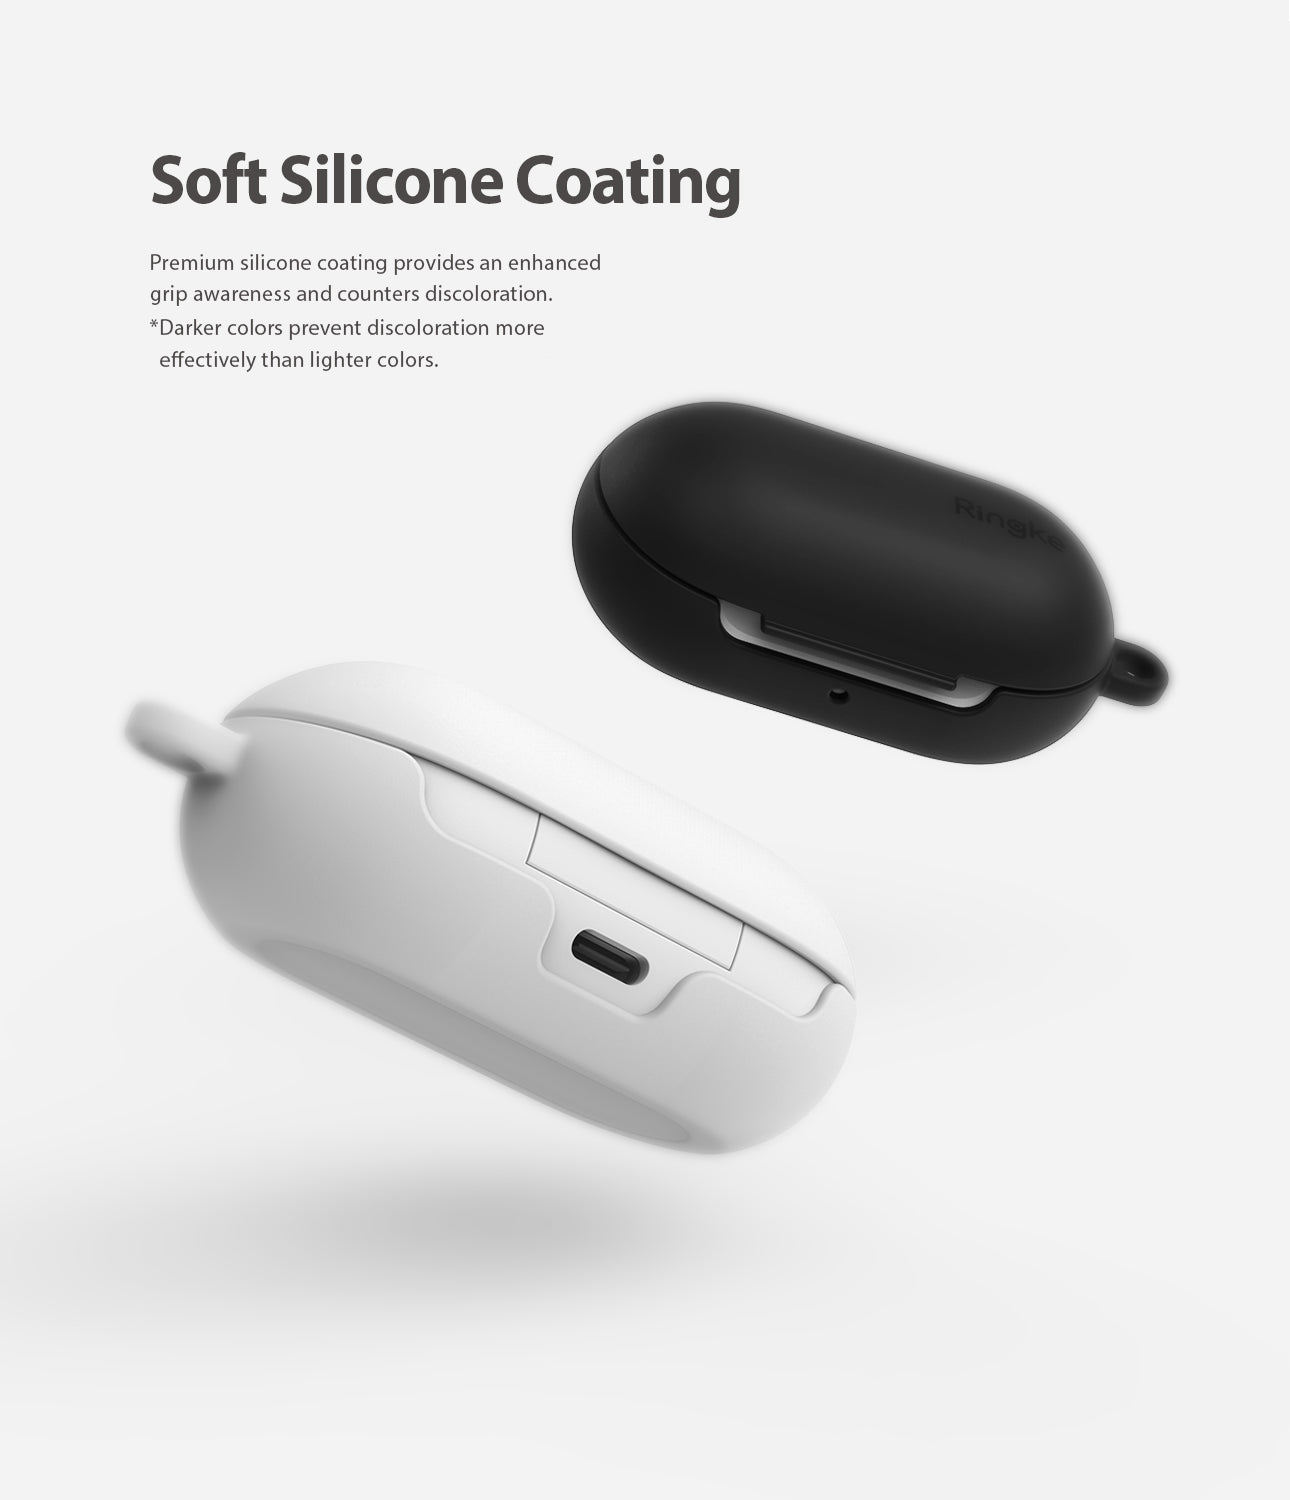 soft silicone coating provides enhanced grip